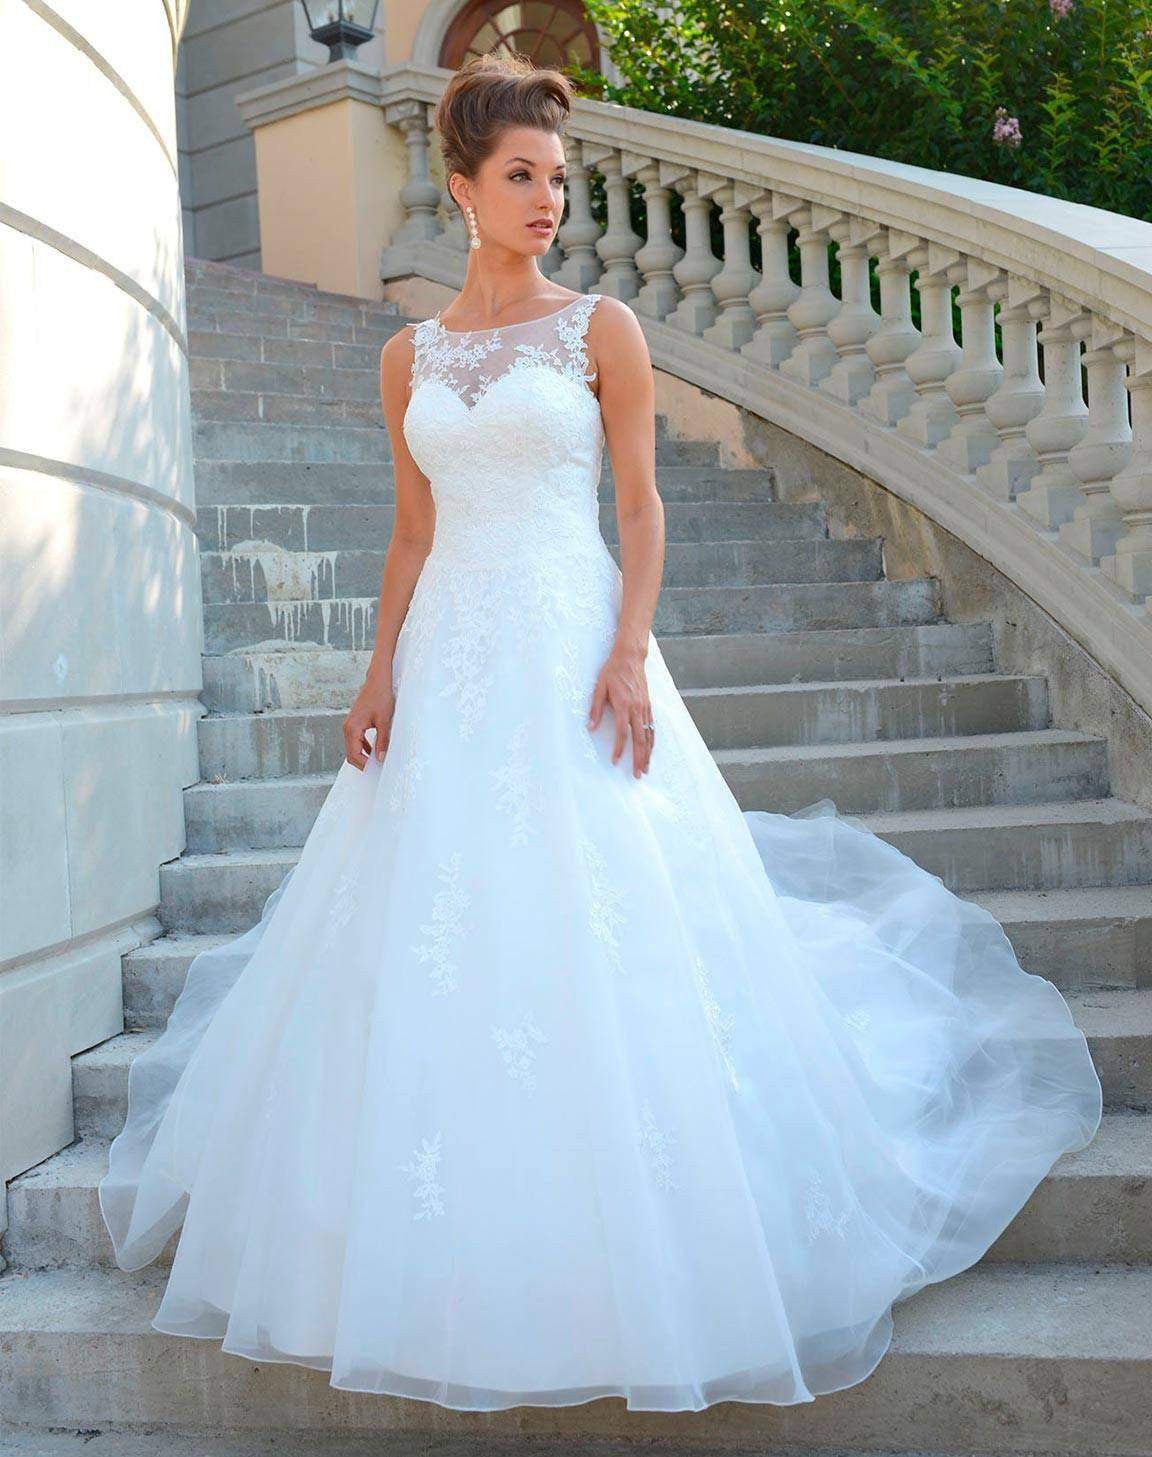 Bridal Gowns - Adore Bridal and Occasion Wear